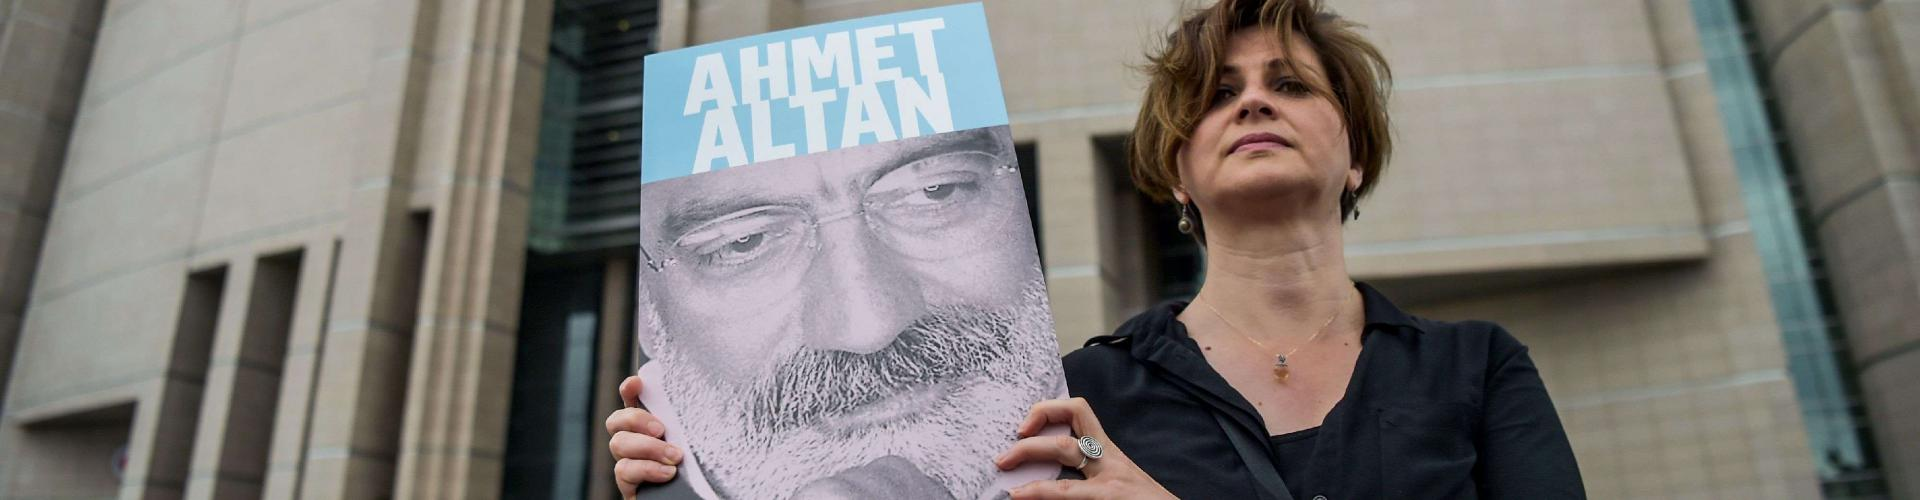 A journalist with a photograph of Ahmet Altan